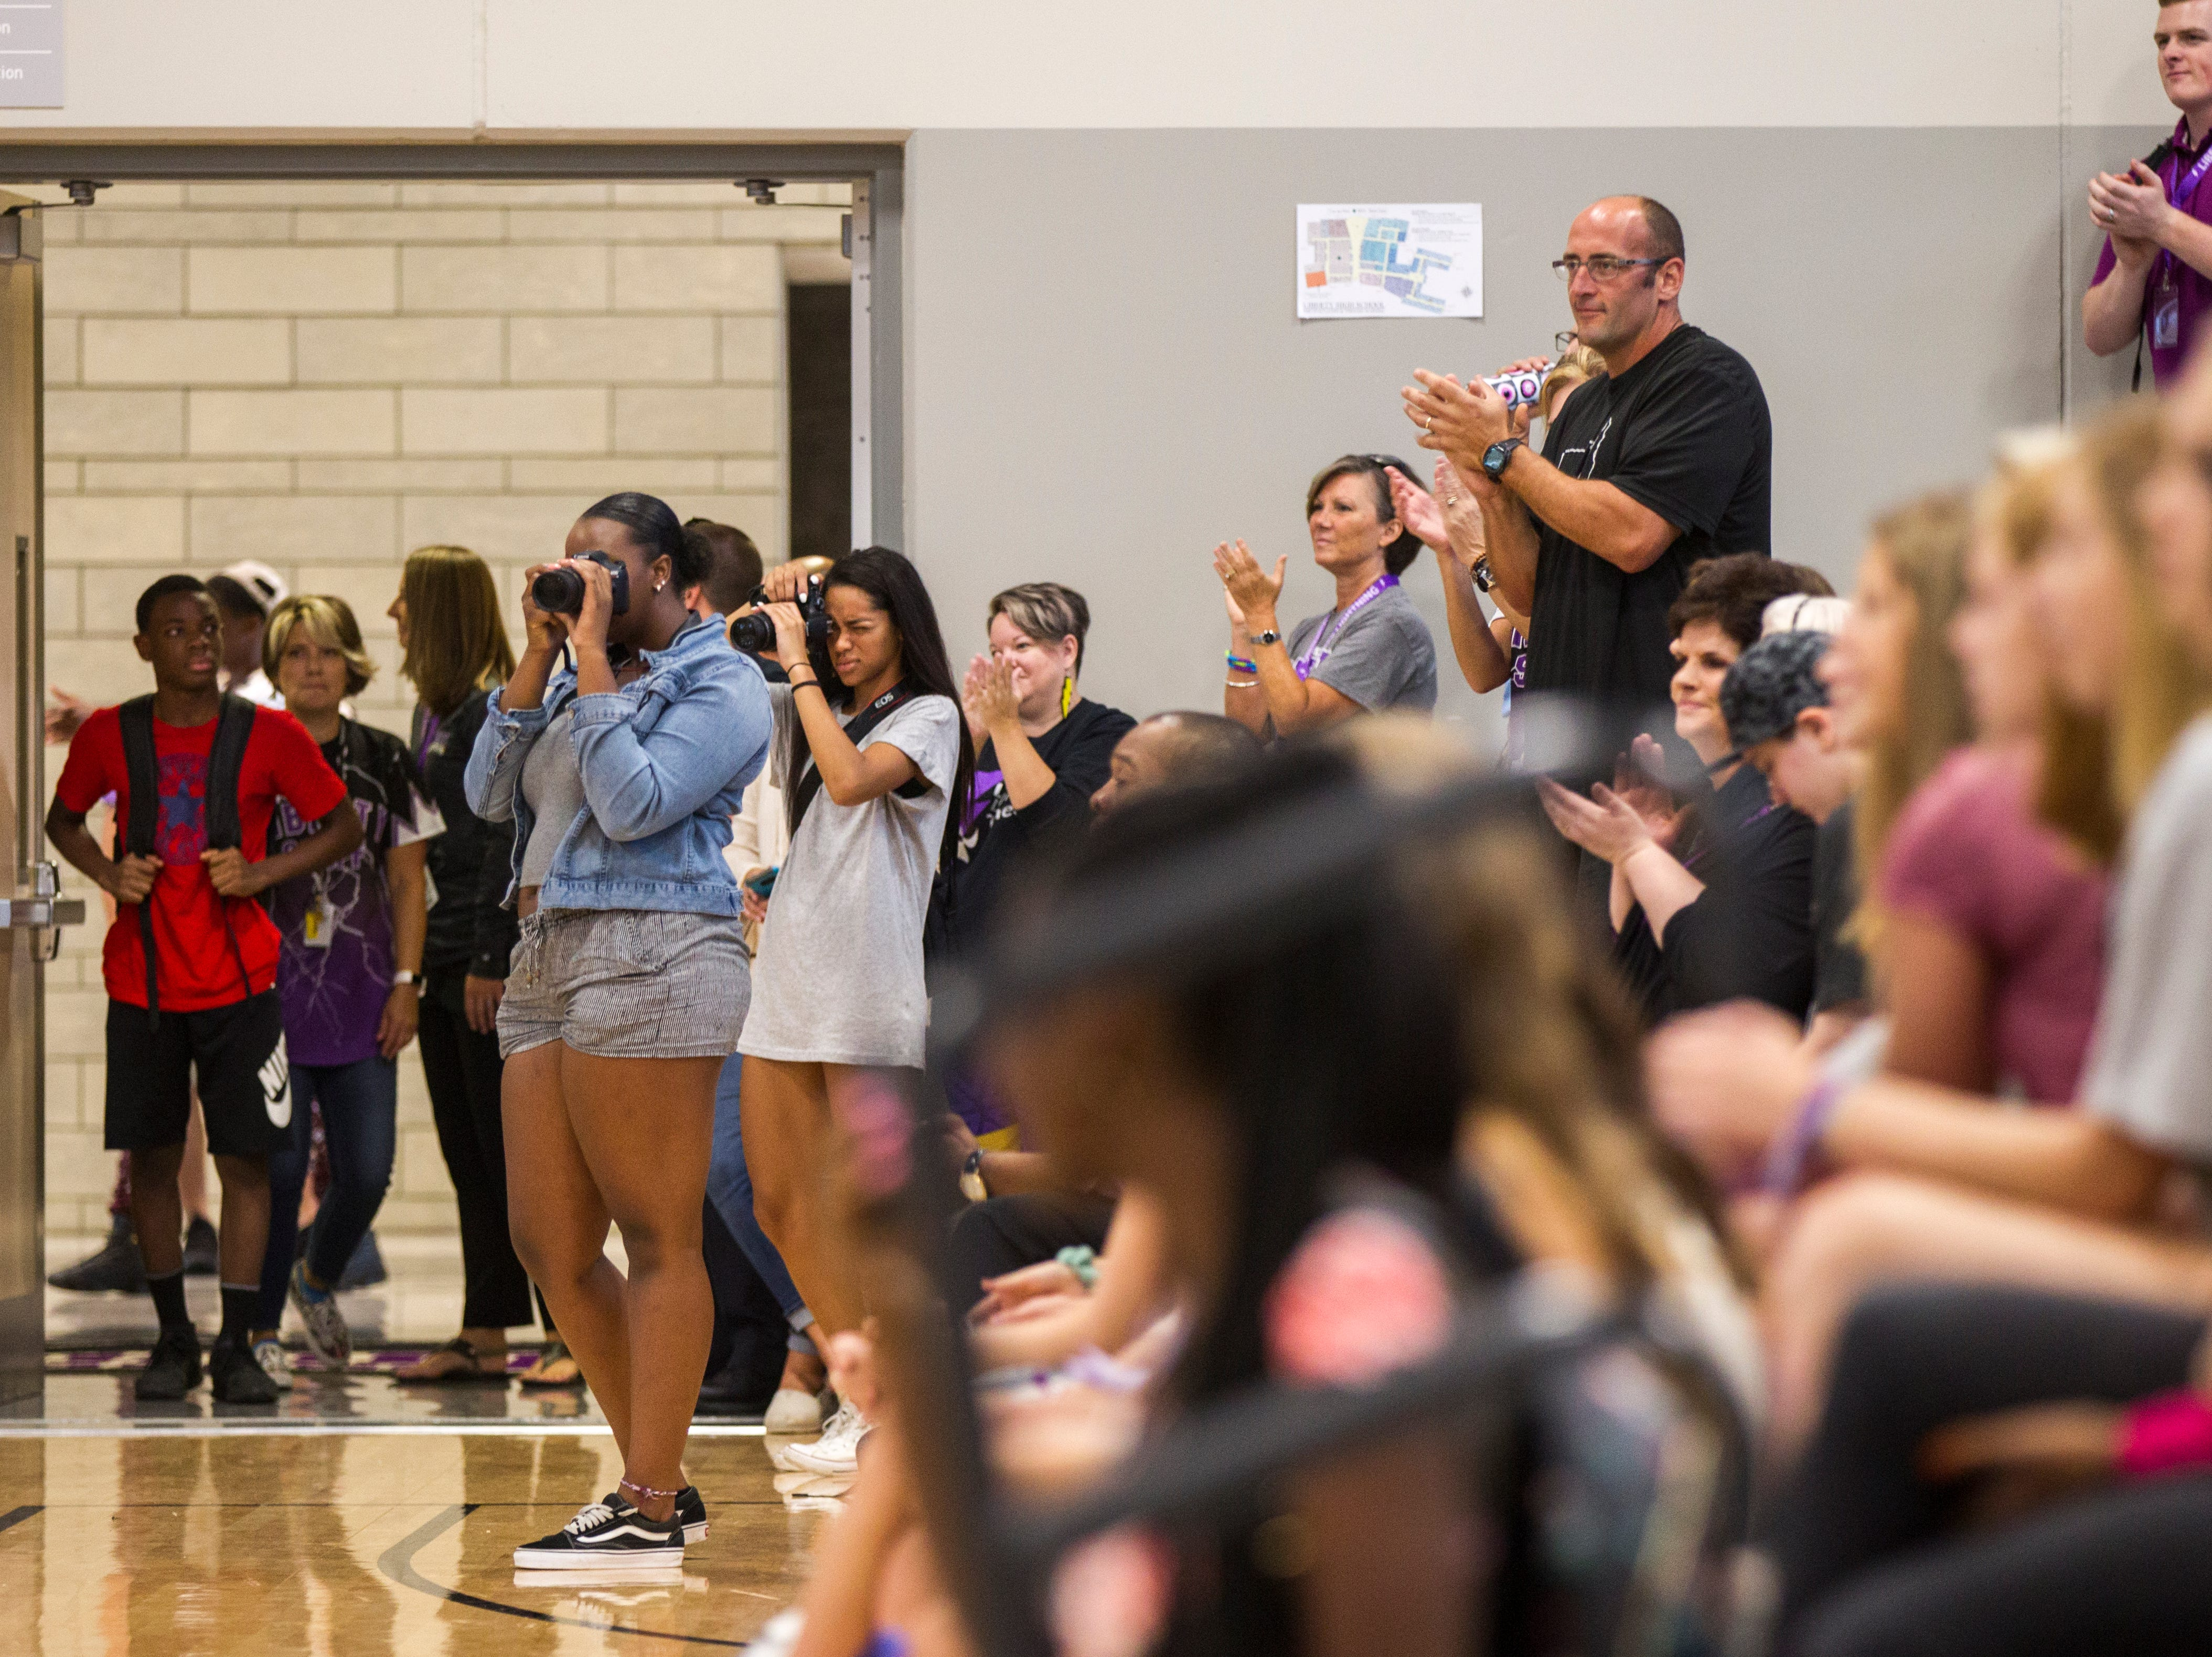 Jeff Gordon, Liberty football head coach and social studies teacher, (second from right) stands while the marching band plays a fight song during a first day of school assembly on Thursday, Aug. 23, 2018, at Liberty High in North Liberty.